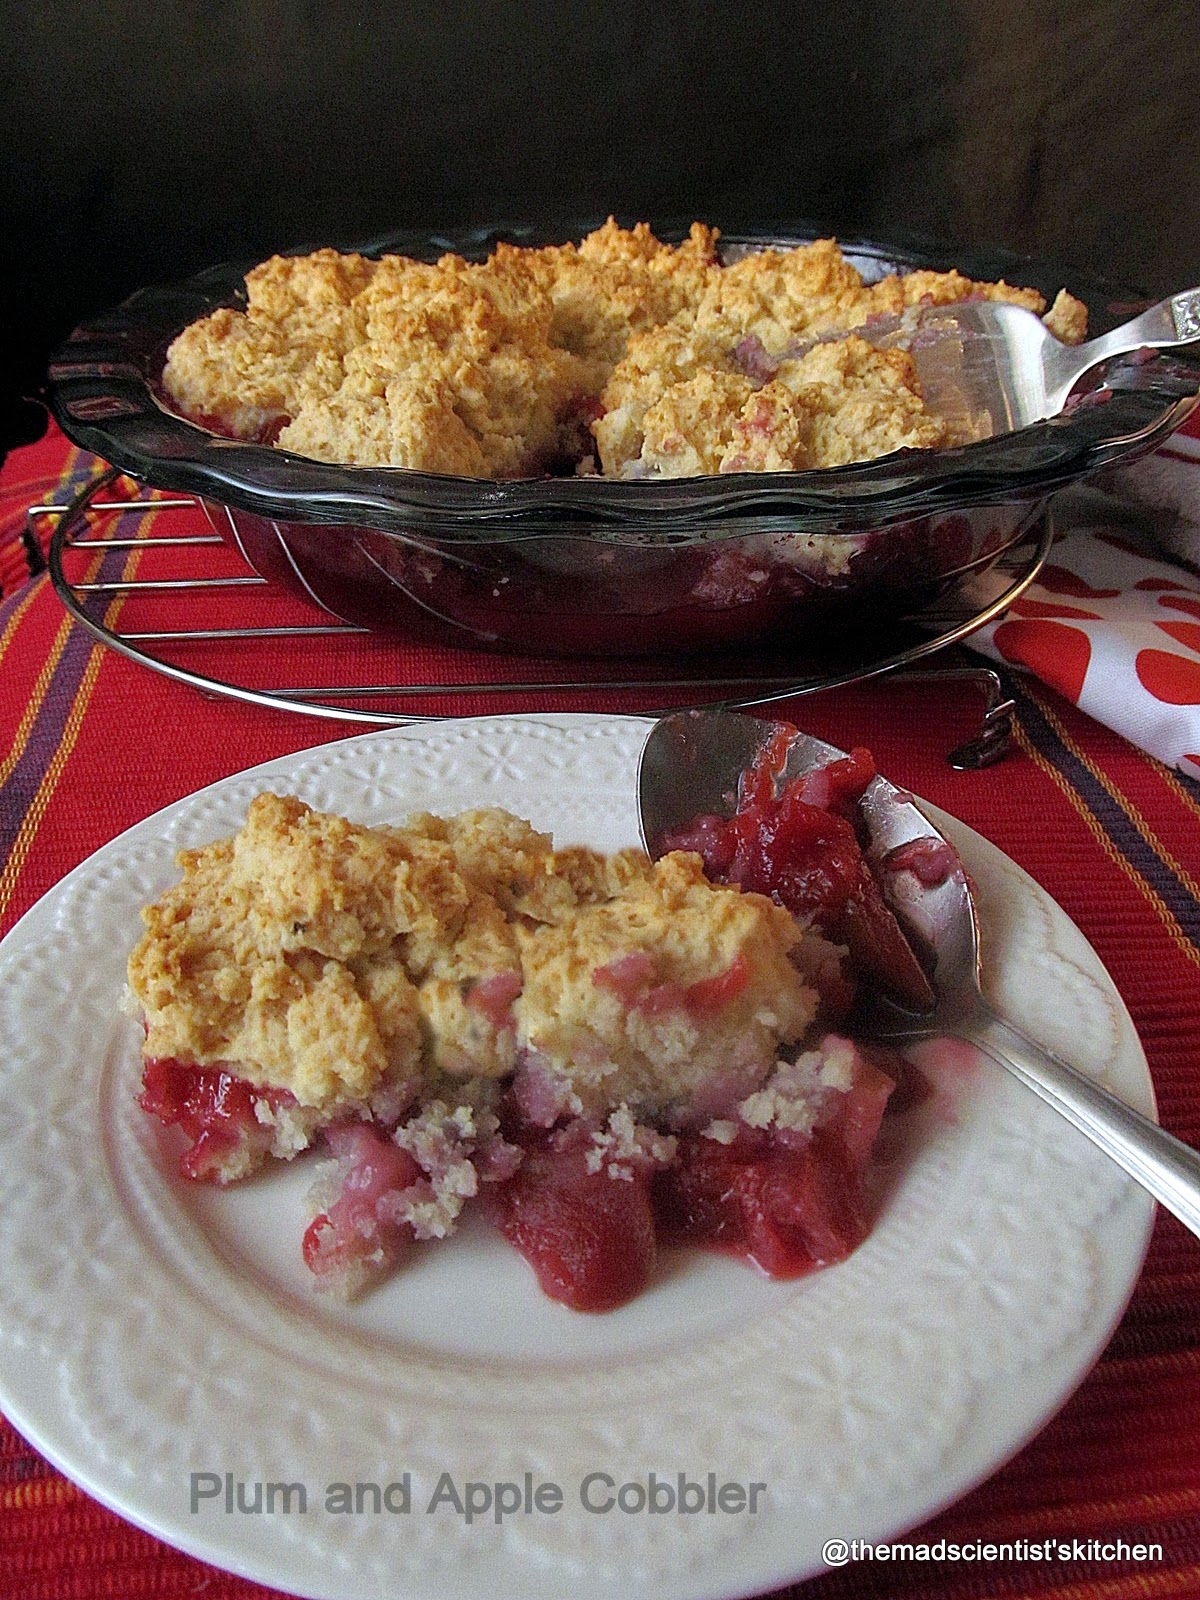 Plum and Apple Cobbler